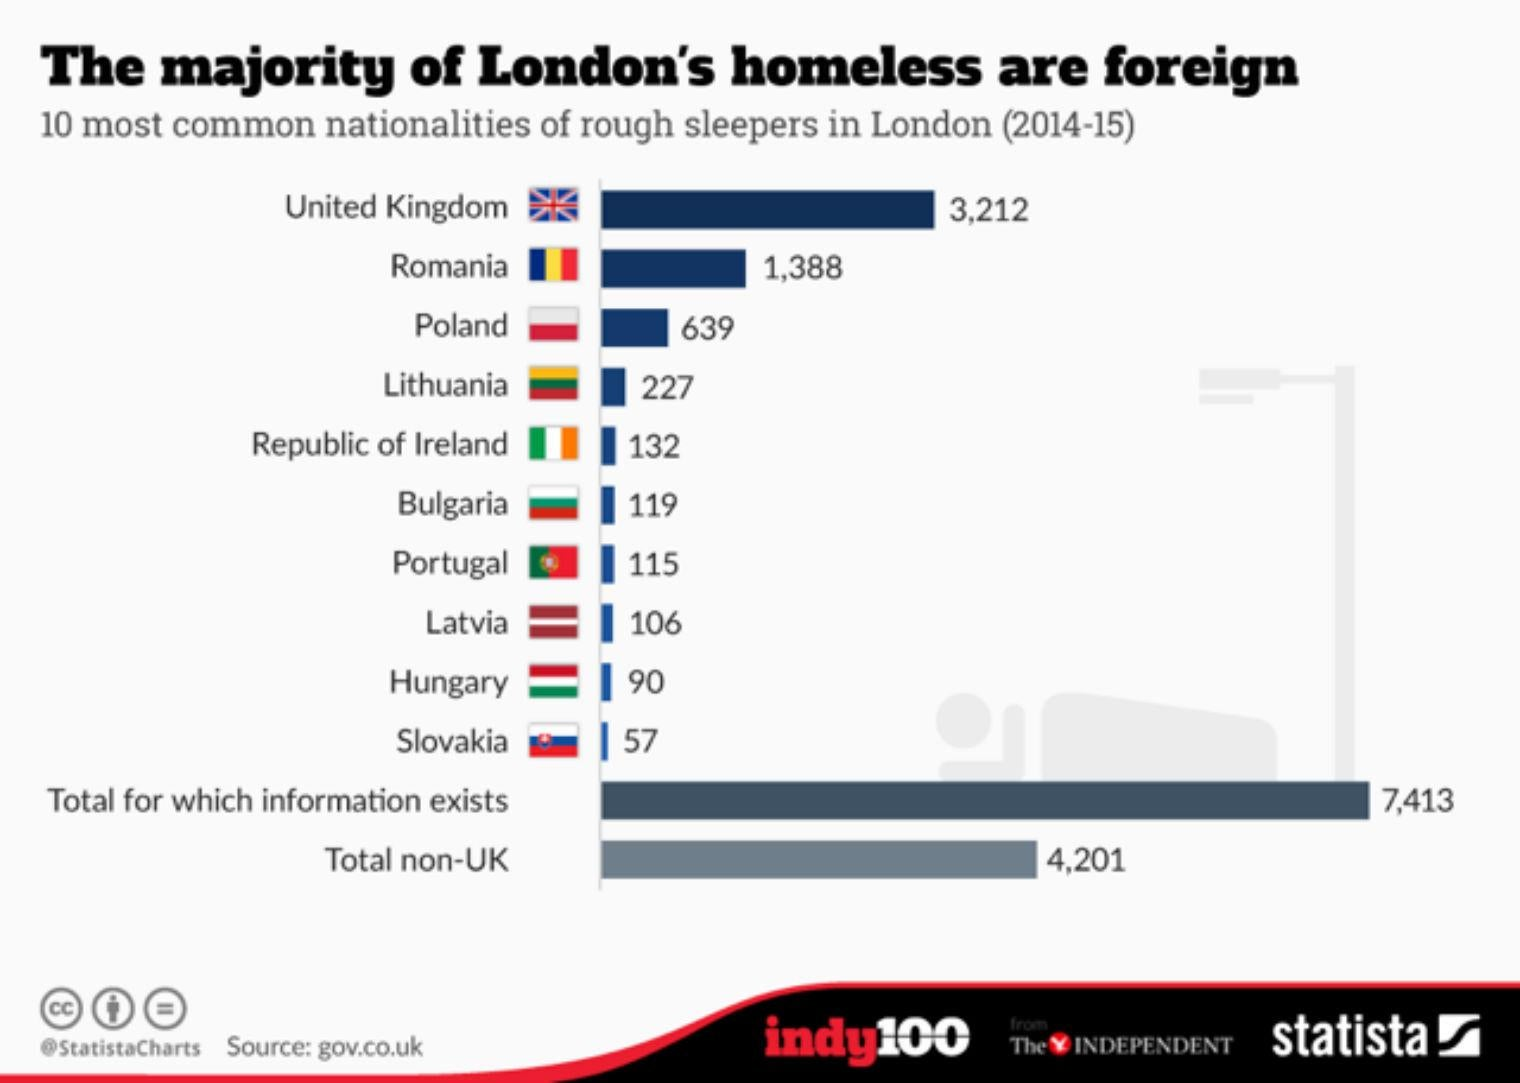 The majority of homeless people in London are foreign nationals